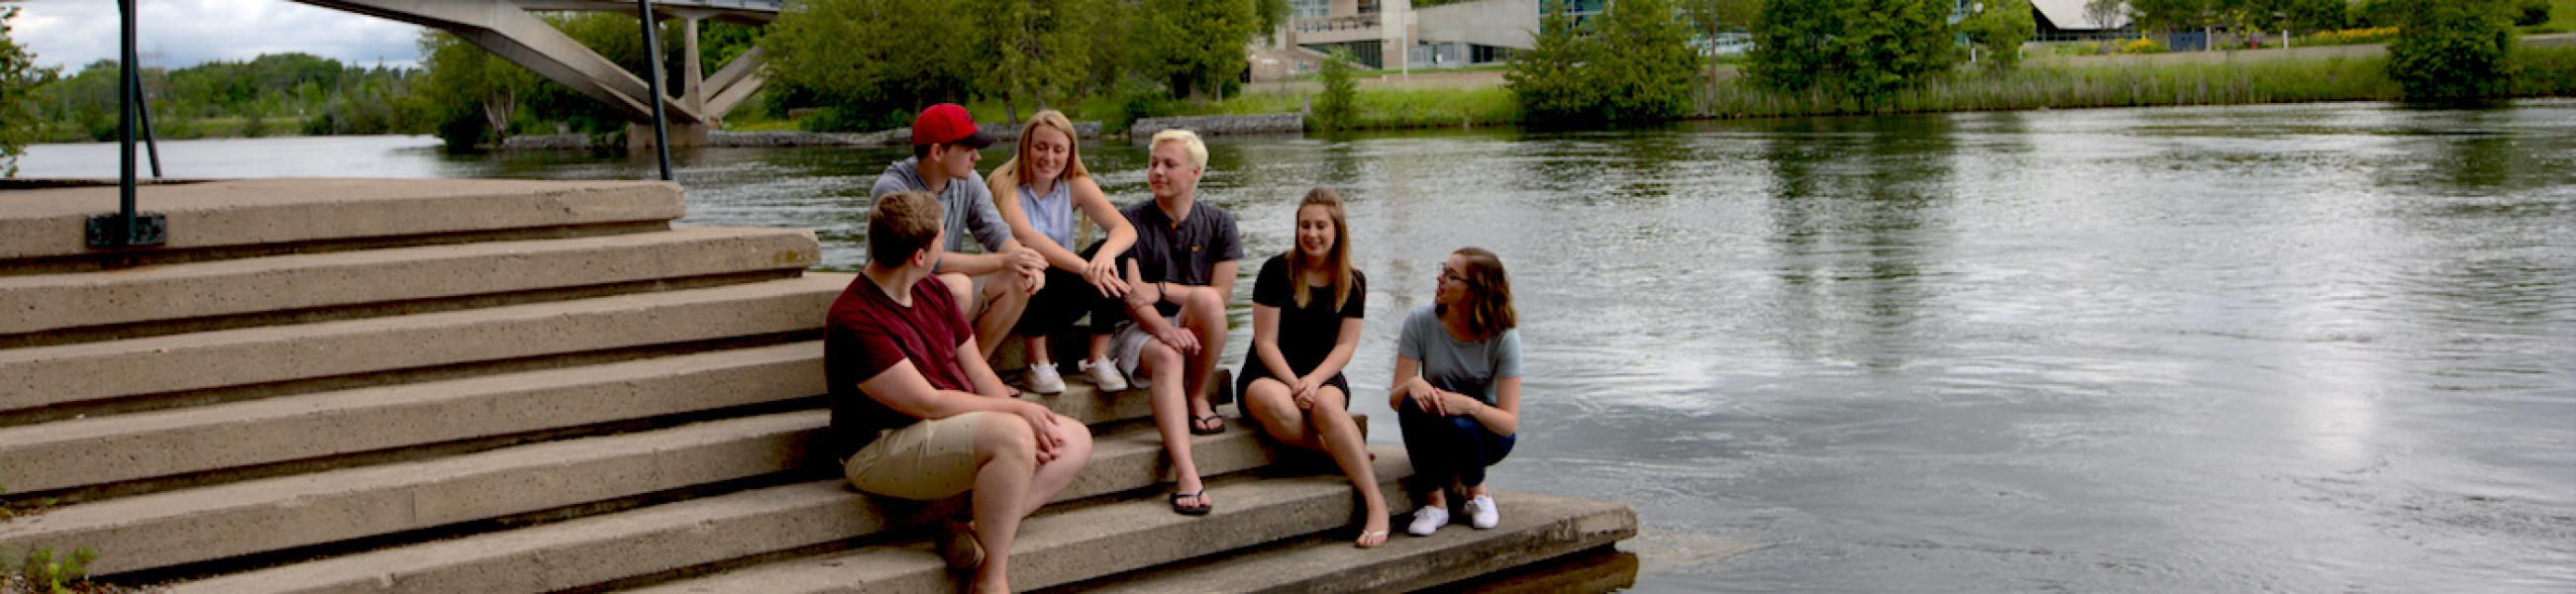 A group of students sitting on some concrete stairs by the river